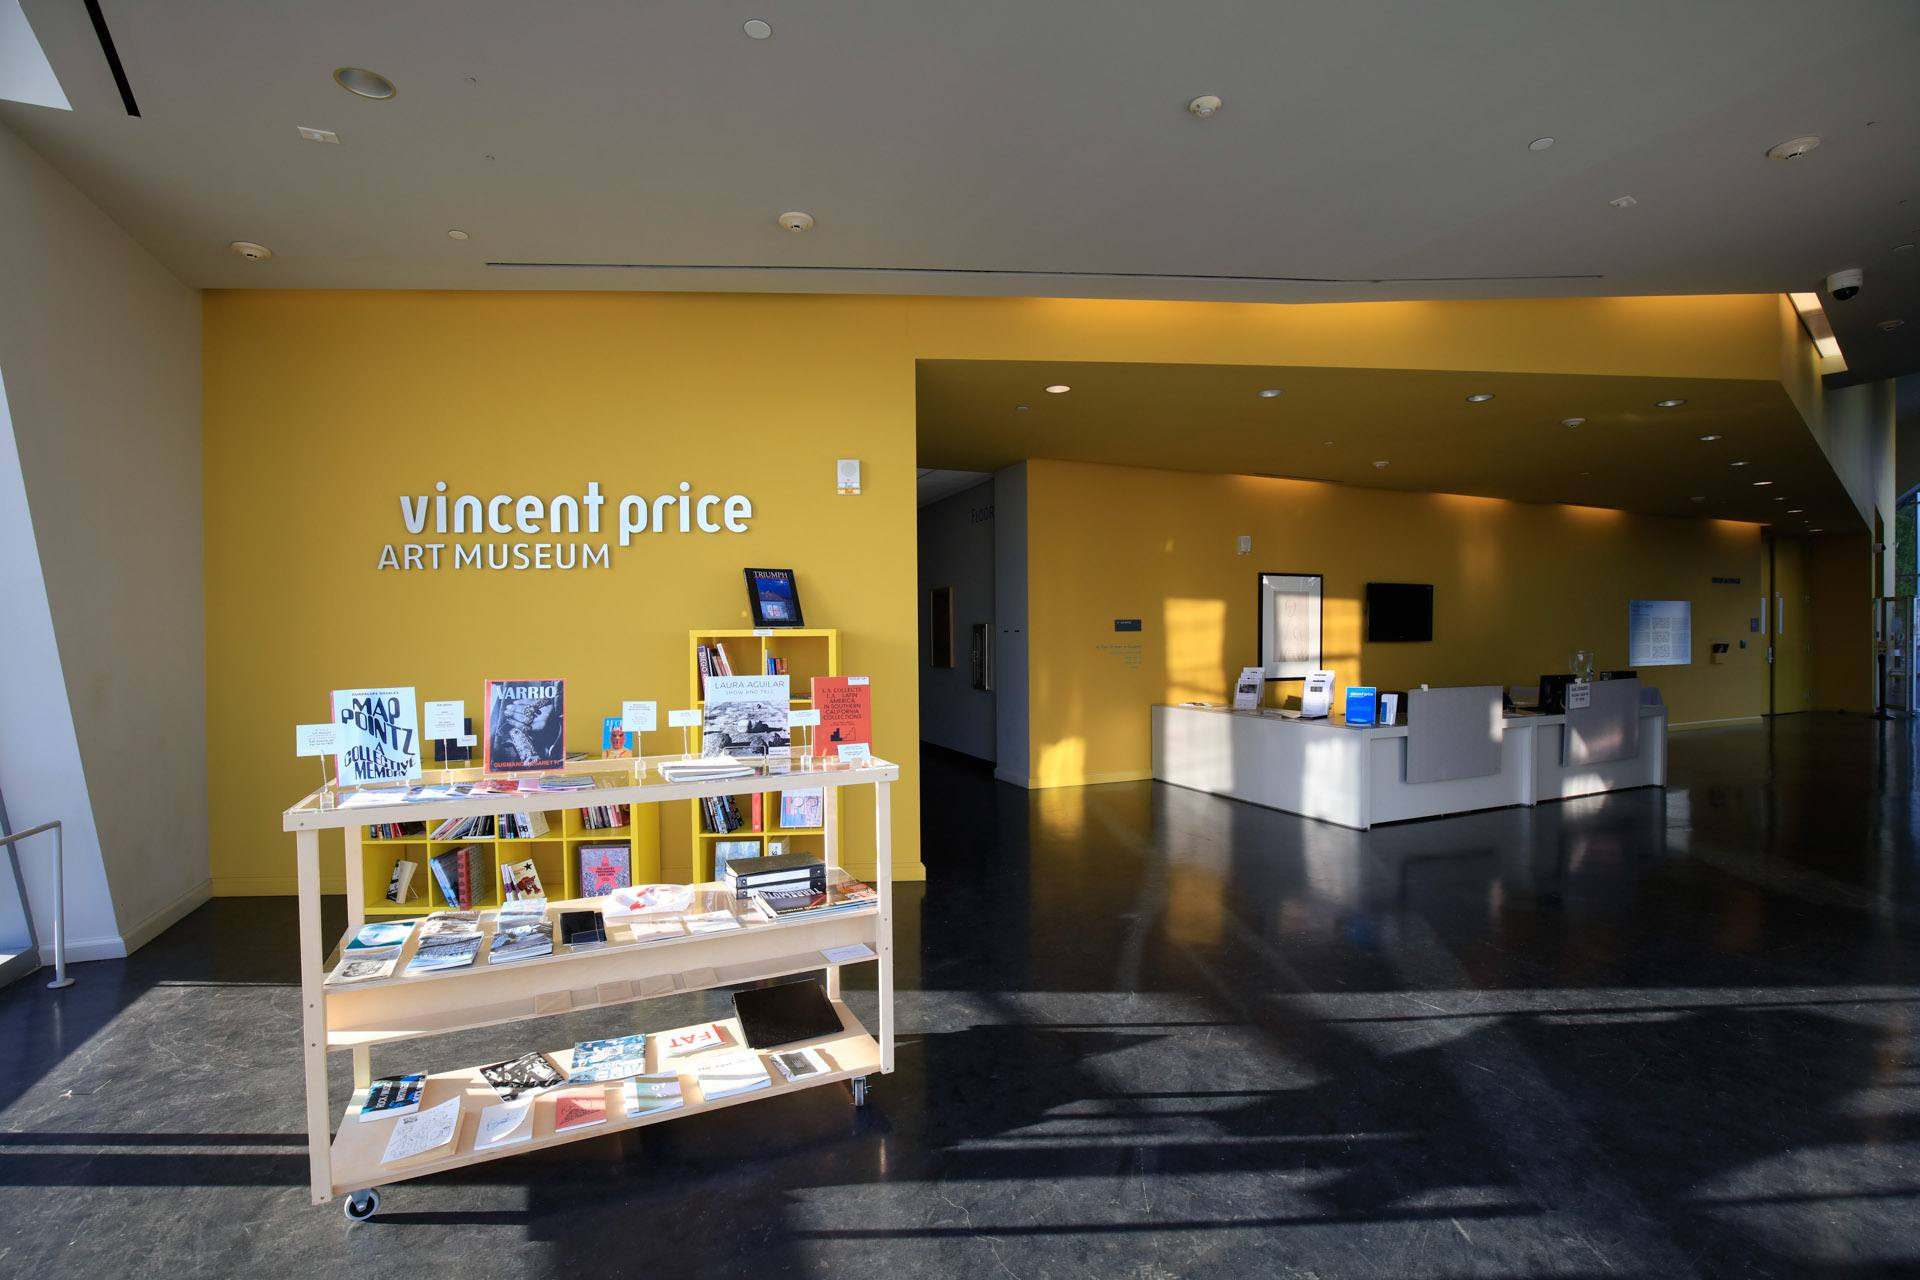 Vincent Price Art Museum Gift shop 2020